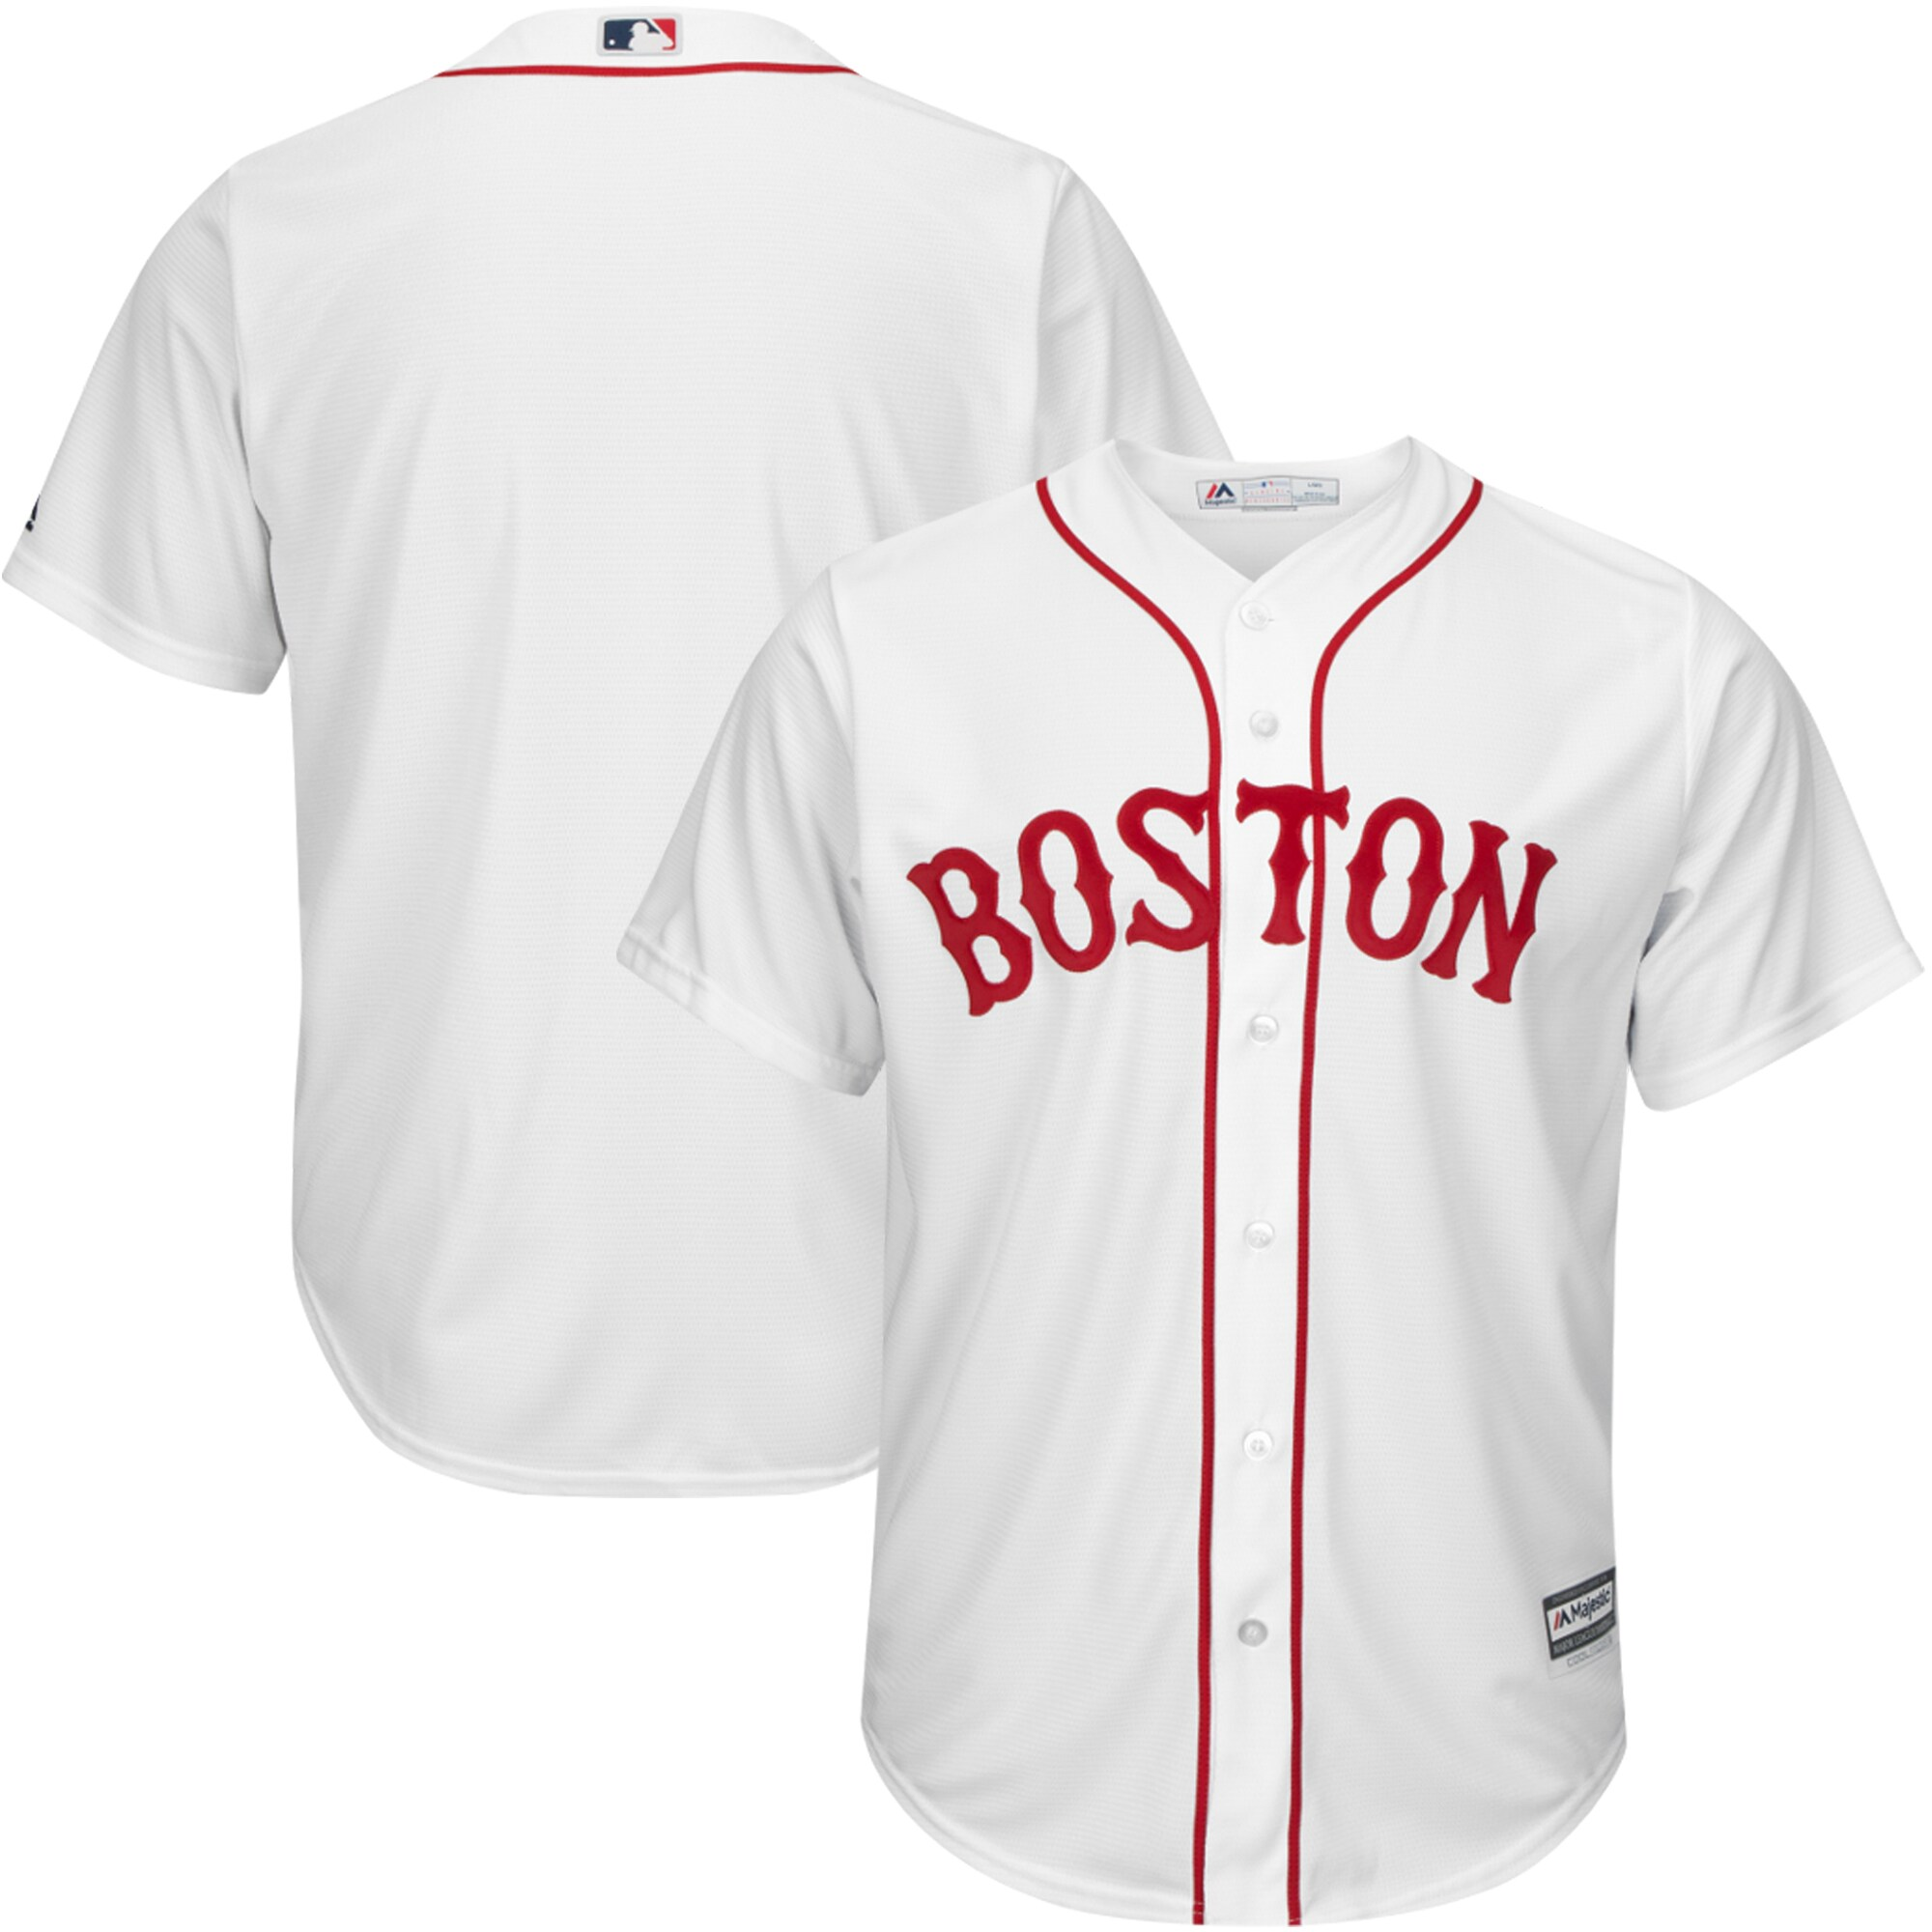 Boston Red Sox Majestic Official Cool Base Alternate Jersey - White